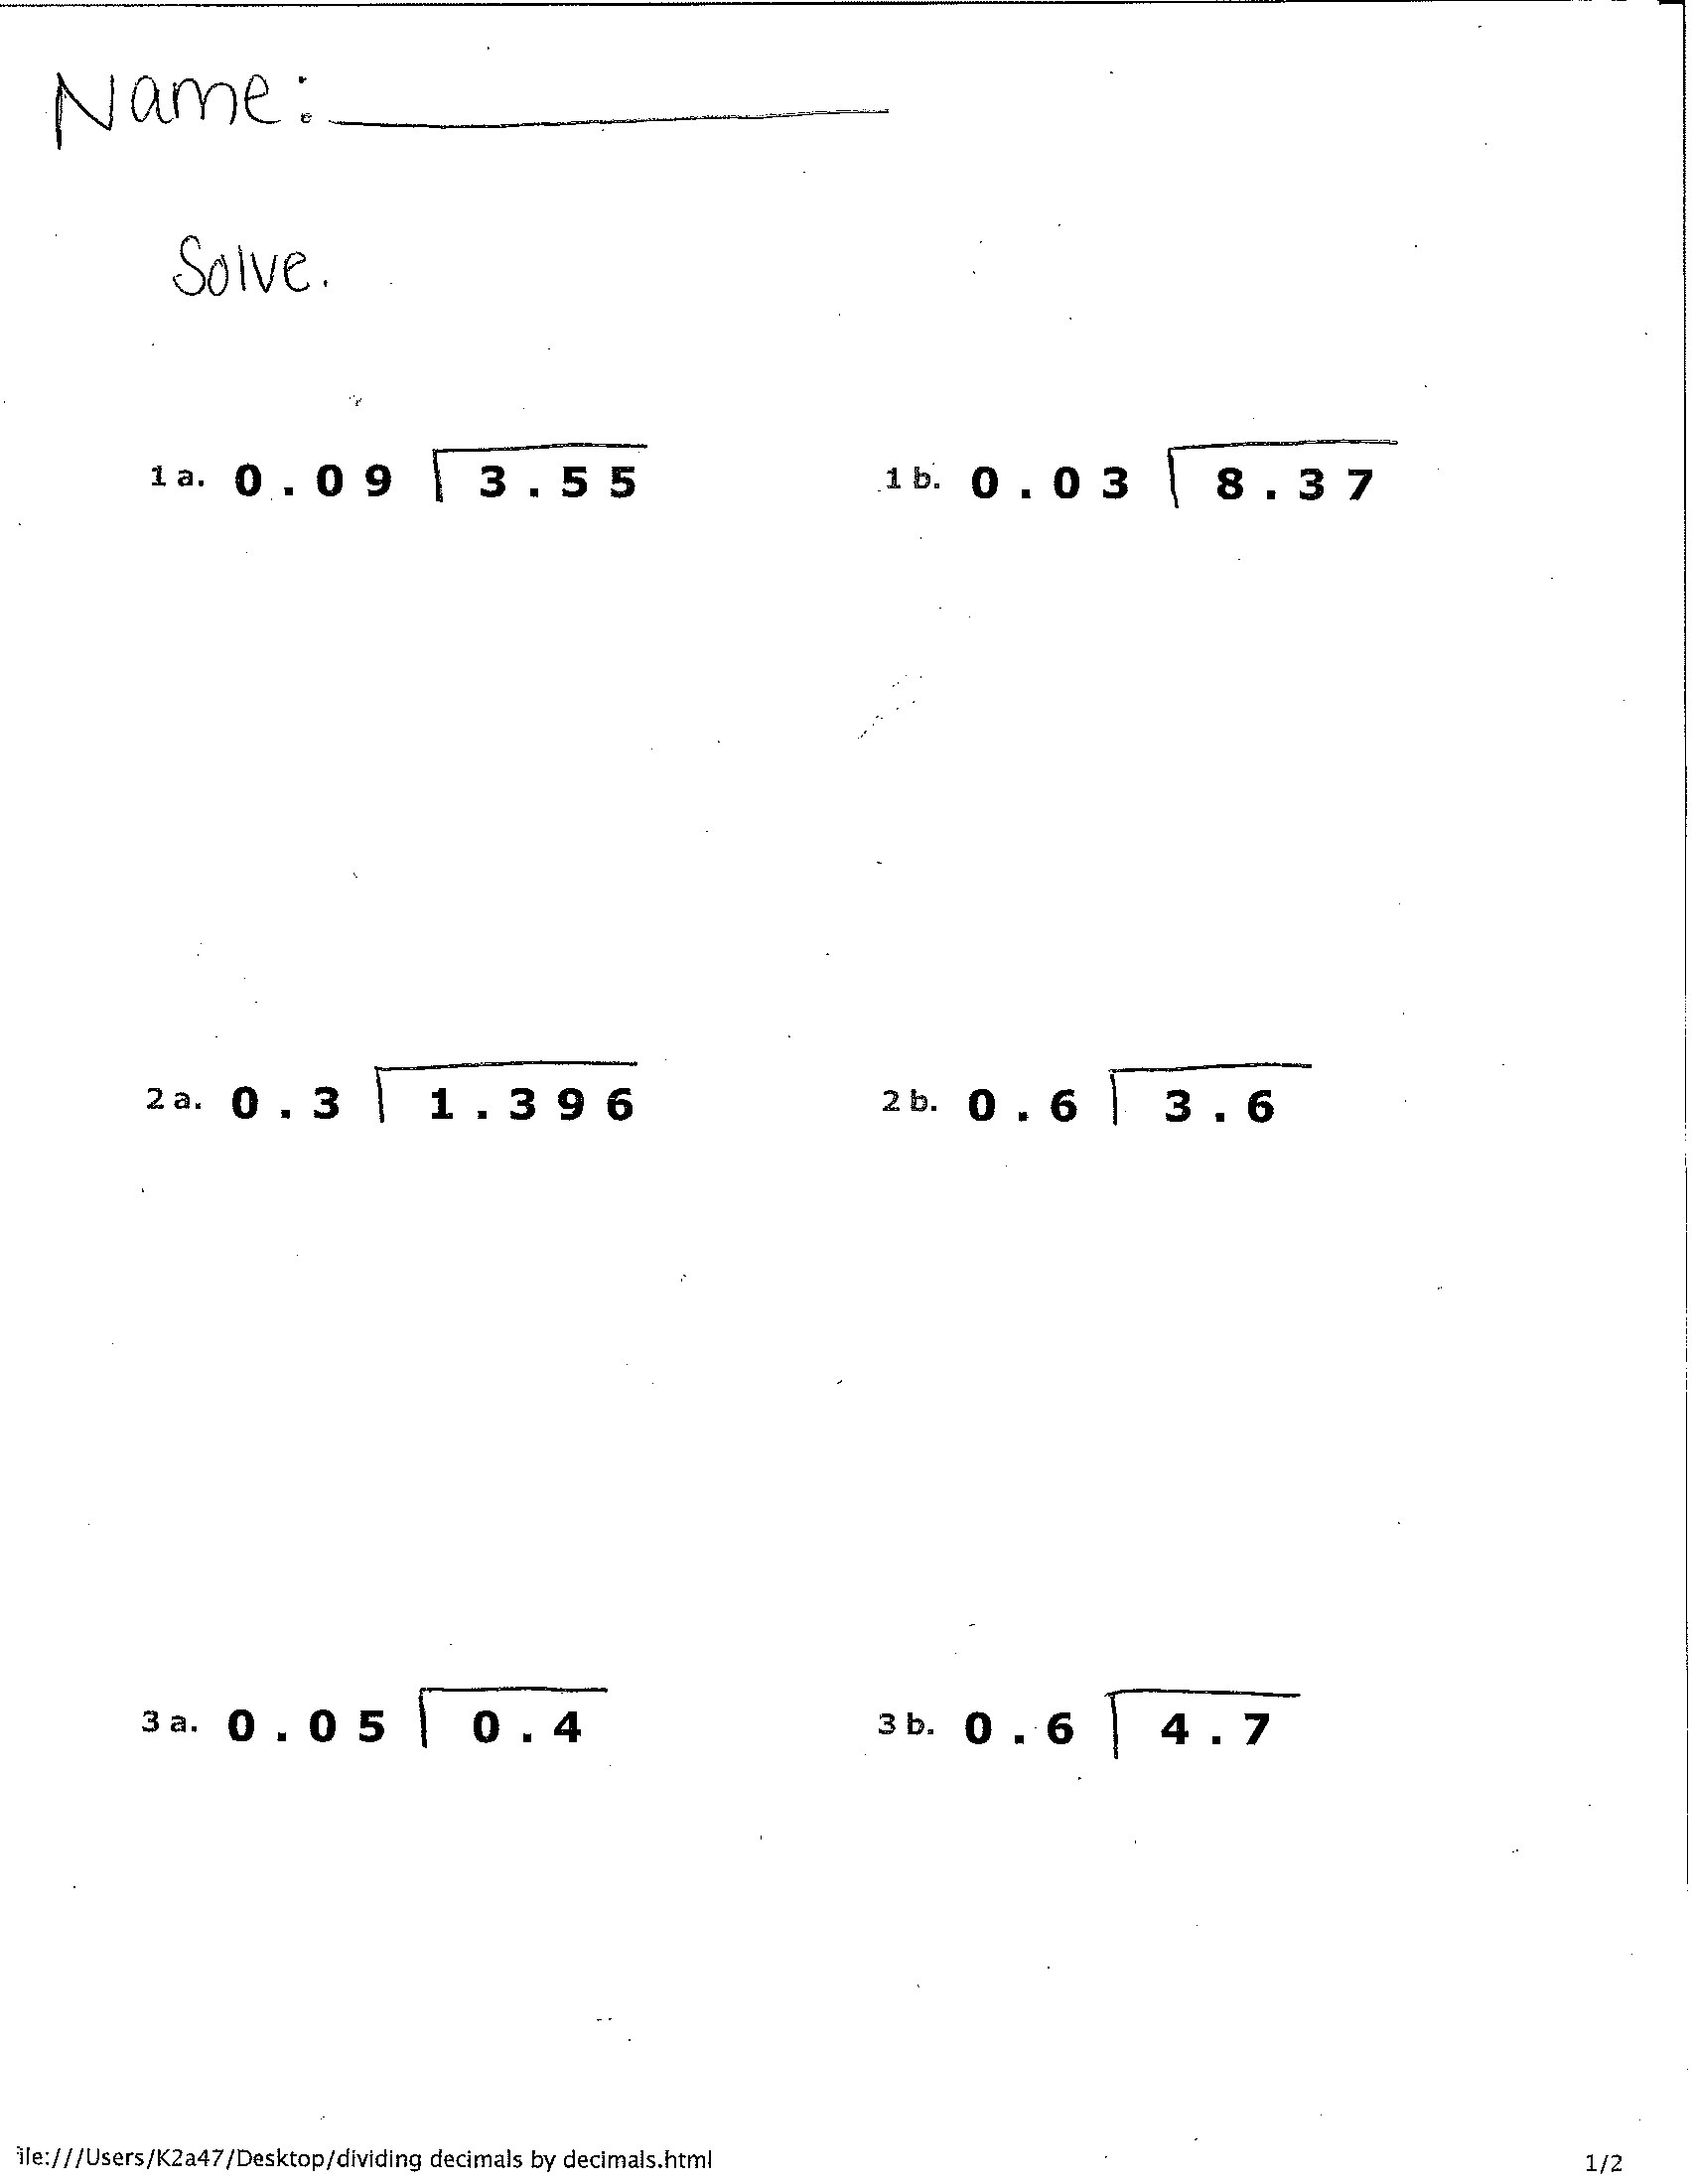 worksheet Multiplying Decimals Worksheets 6th Grade world 2 decimals osky 6th grade math decimal division worksheet varied answers